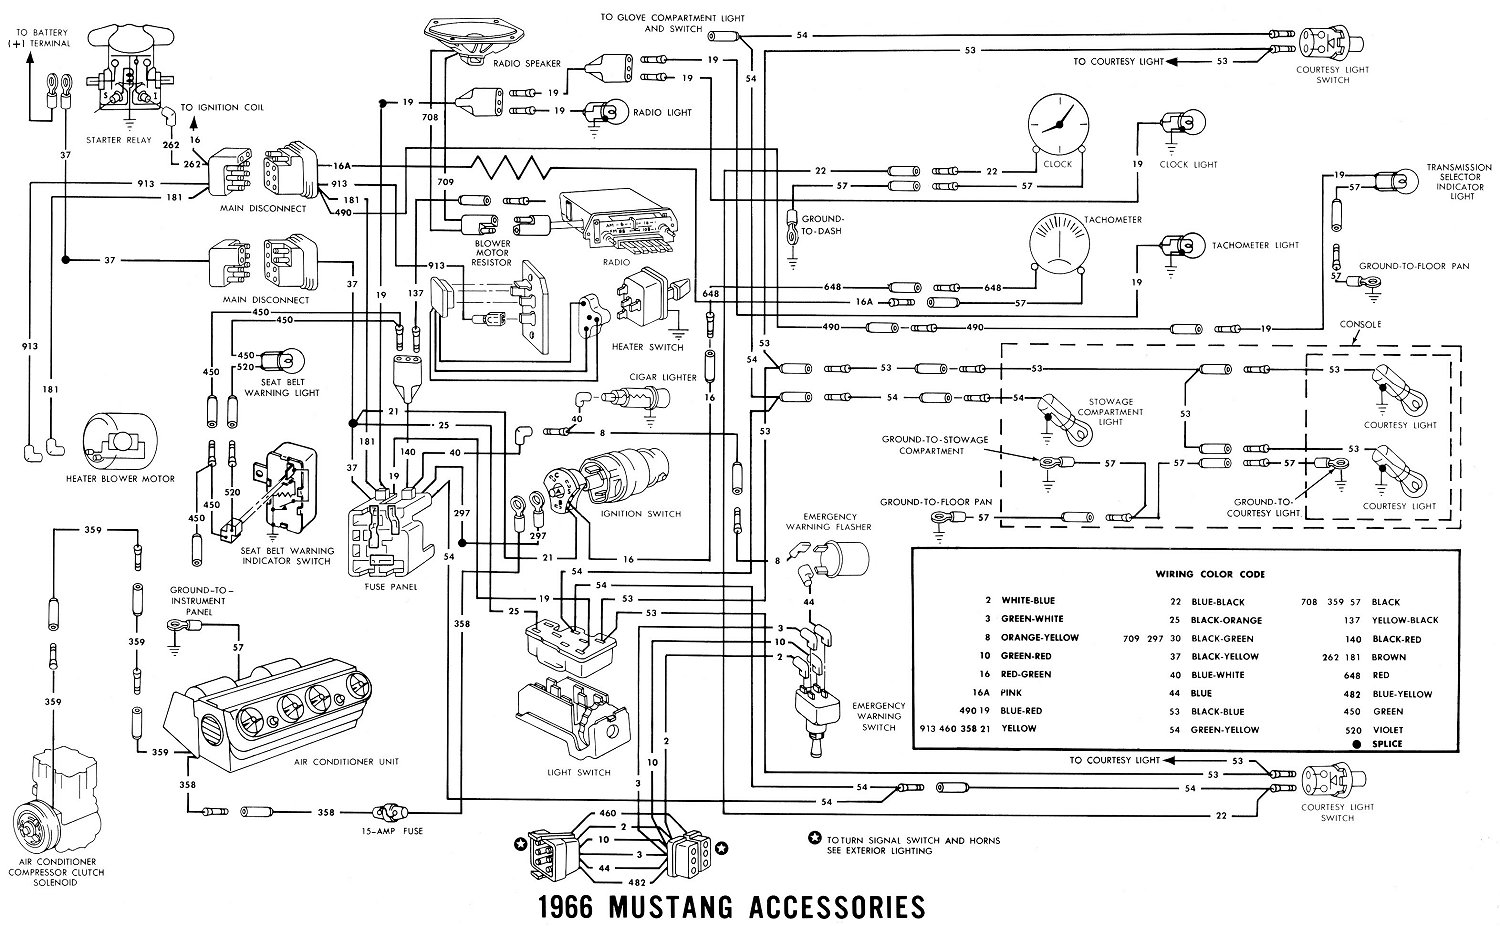 Fender Mustang Wiring Diagram